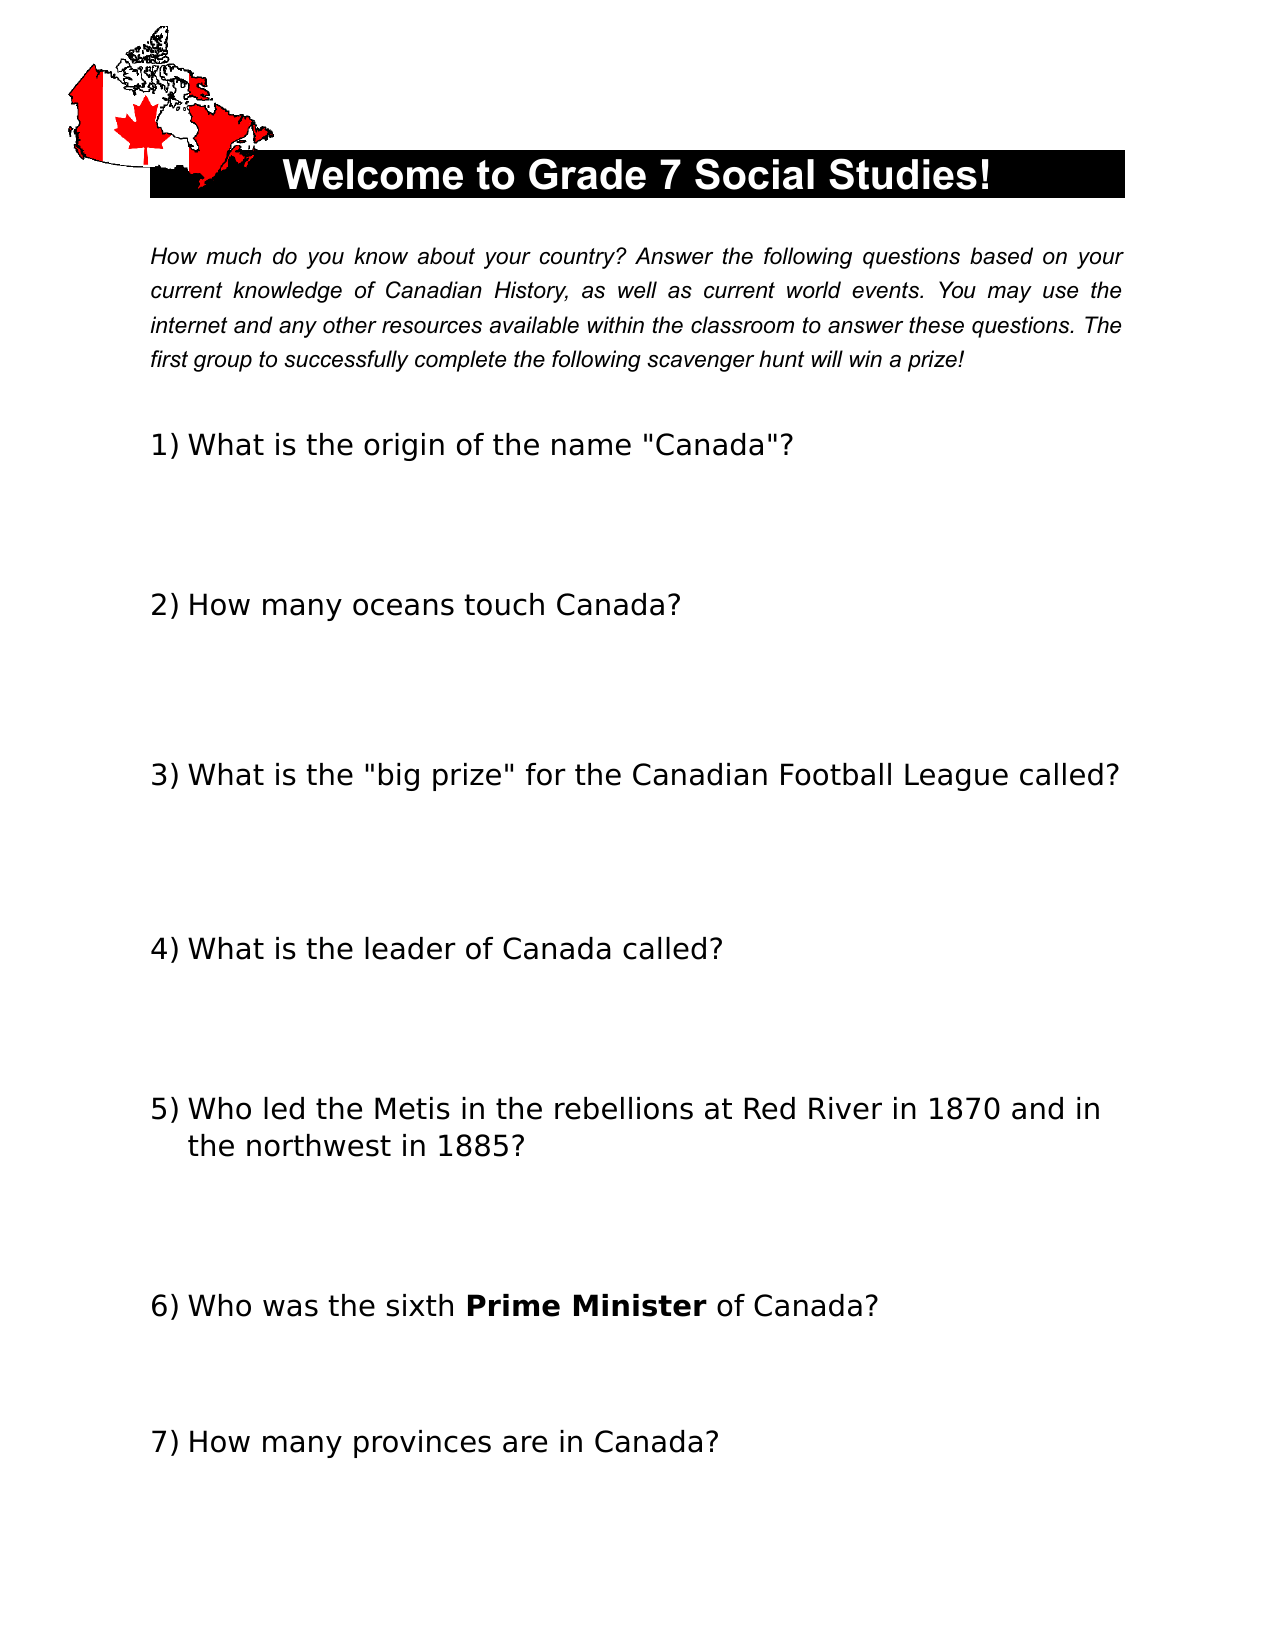 Canadian History Scavenger Hunt Resource Preview